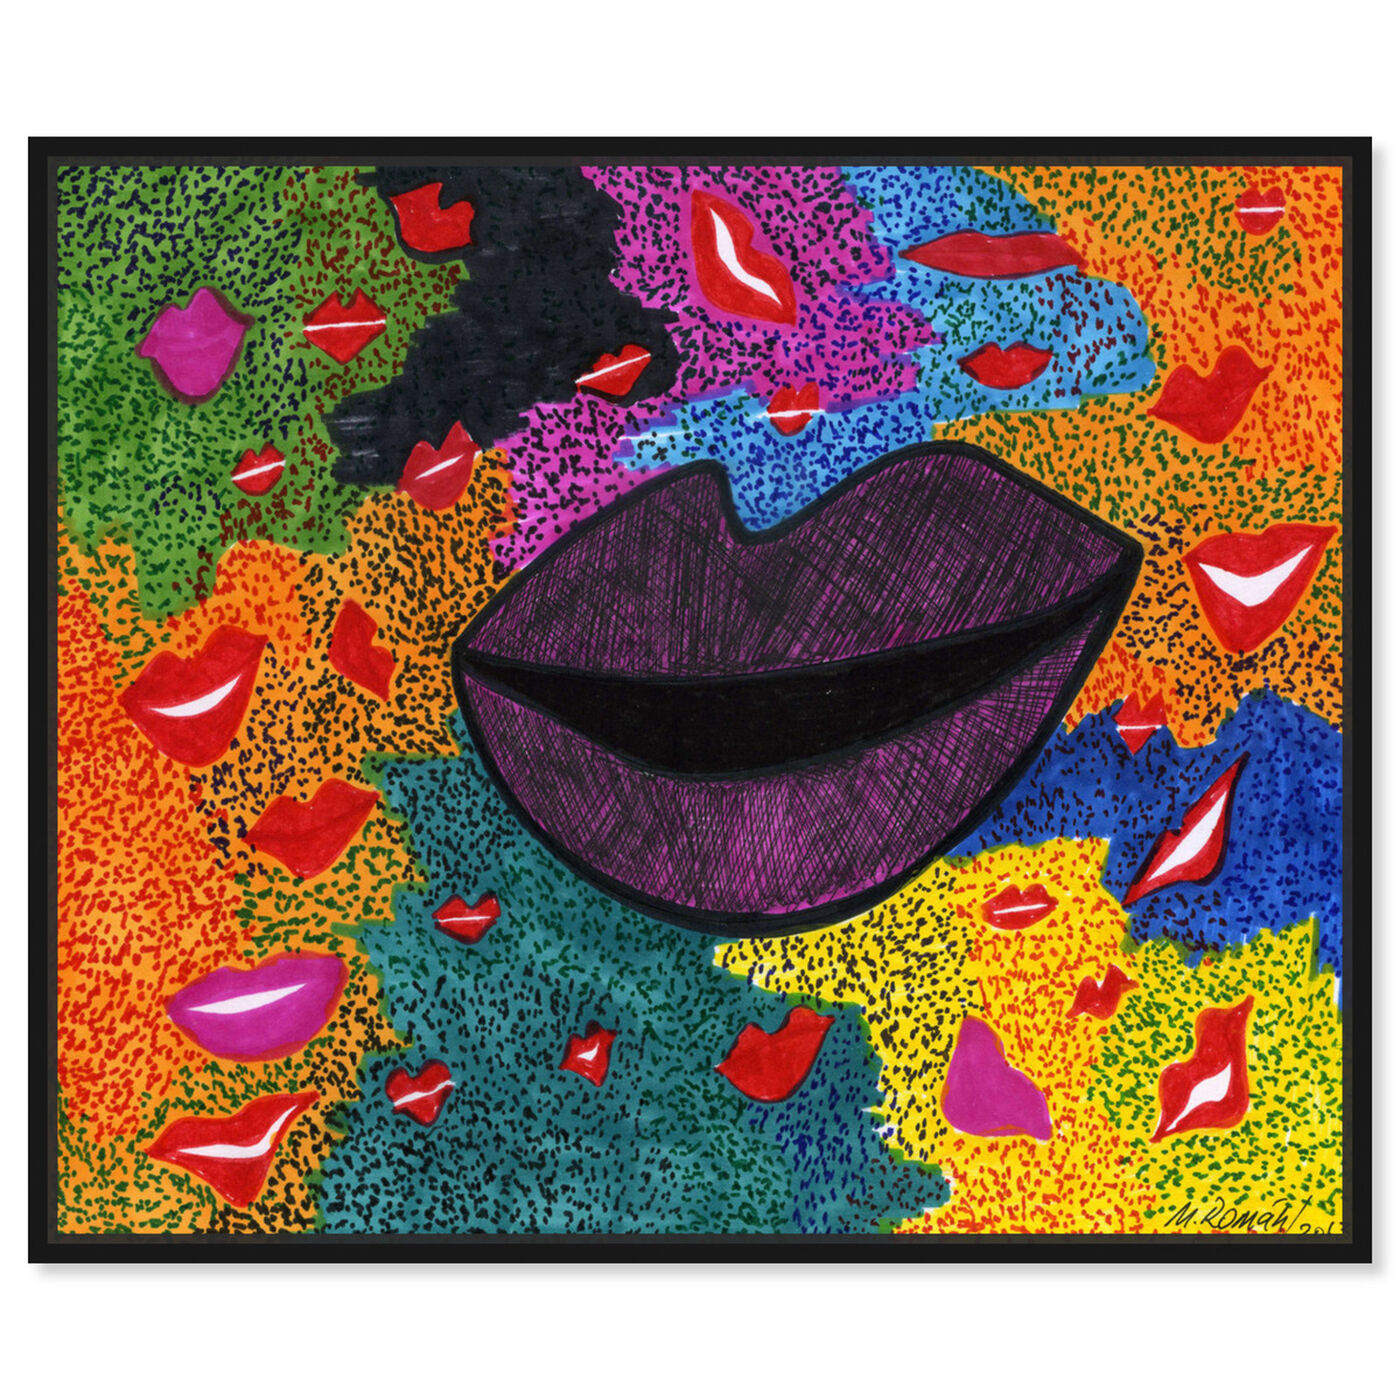 Front view of Laughter featuring fashion and glam and lips art.